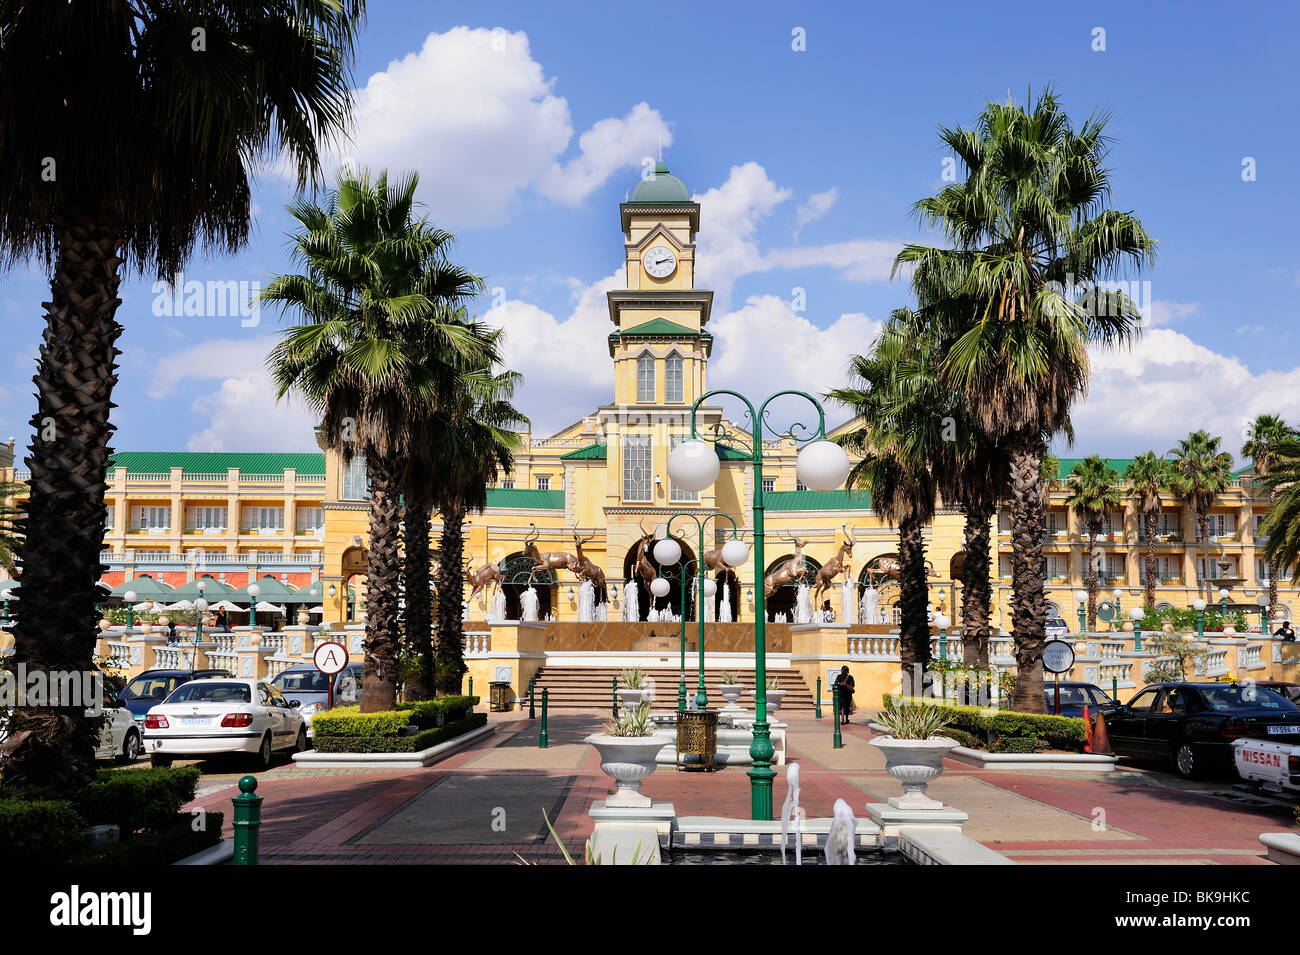 Golden Reef City Casino, Johannesburg, South Africa - Stock Image